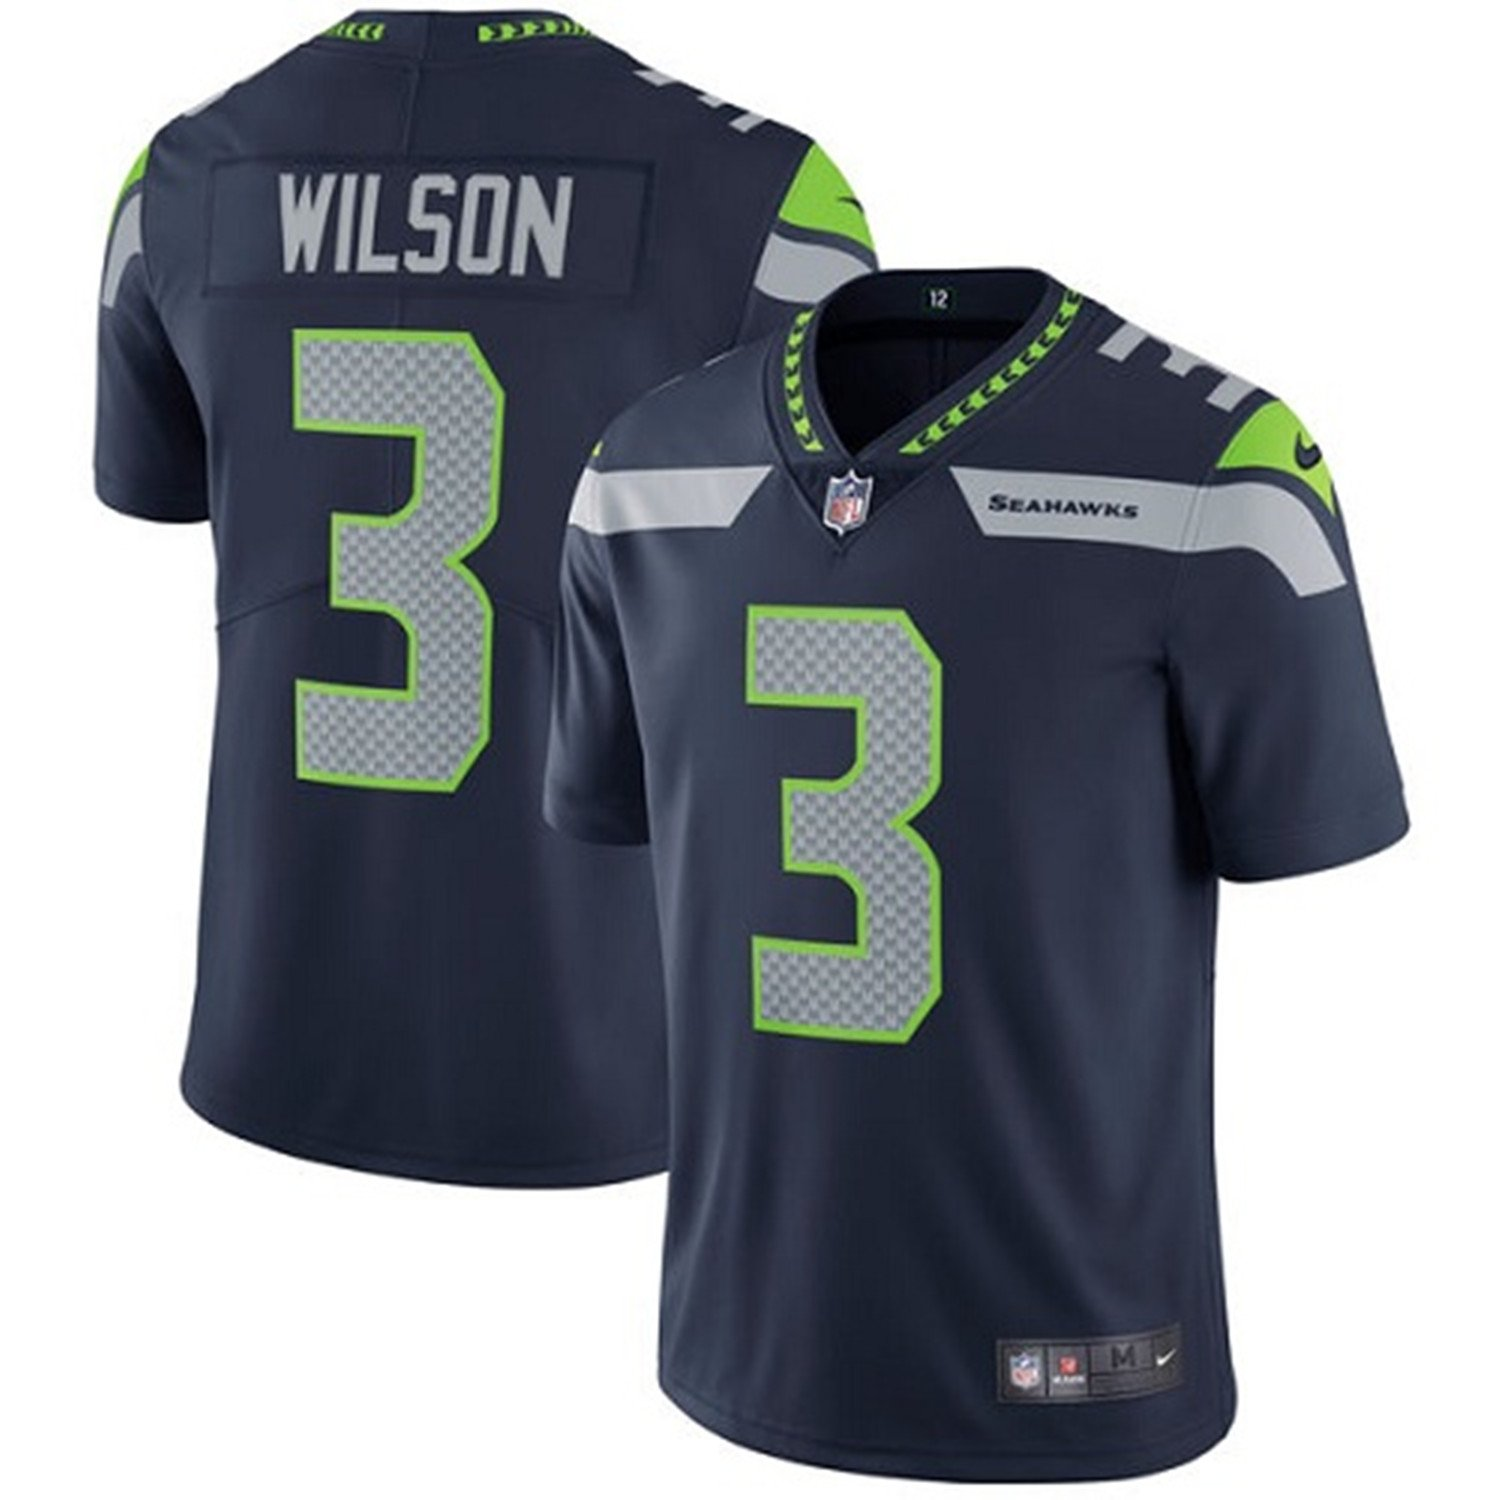 more photos 4e700 47634 NIKE Men's #3 Russell Wilson Seattle Seahawks Limited Jersey Navy Blue